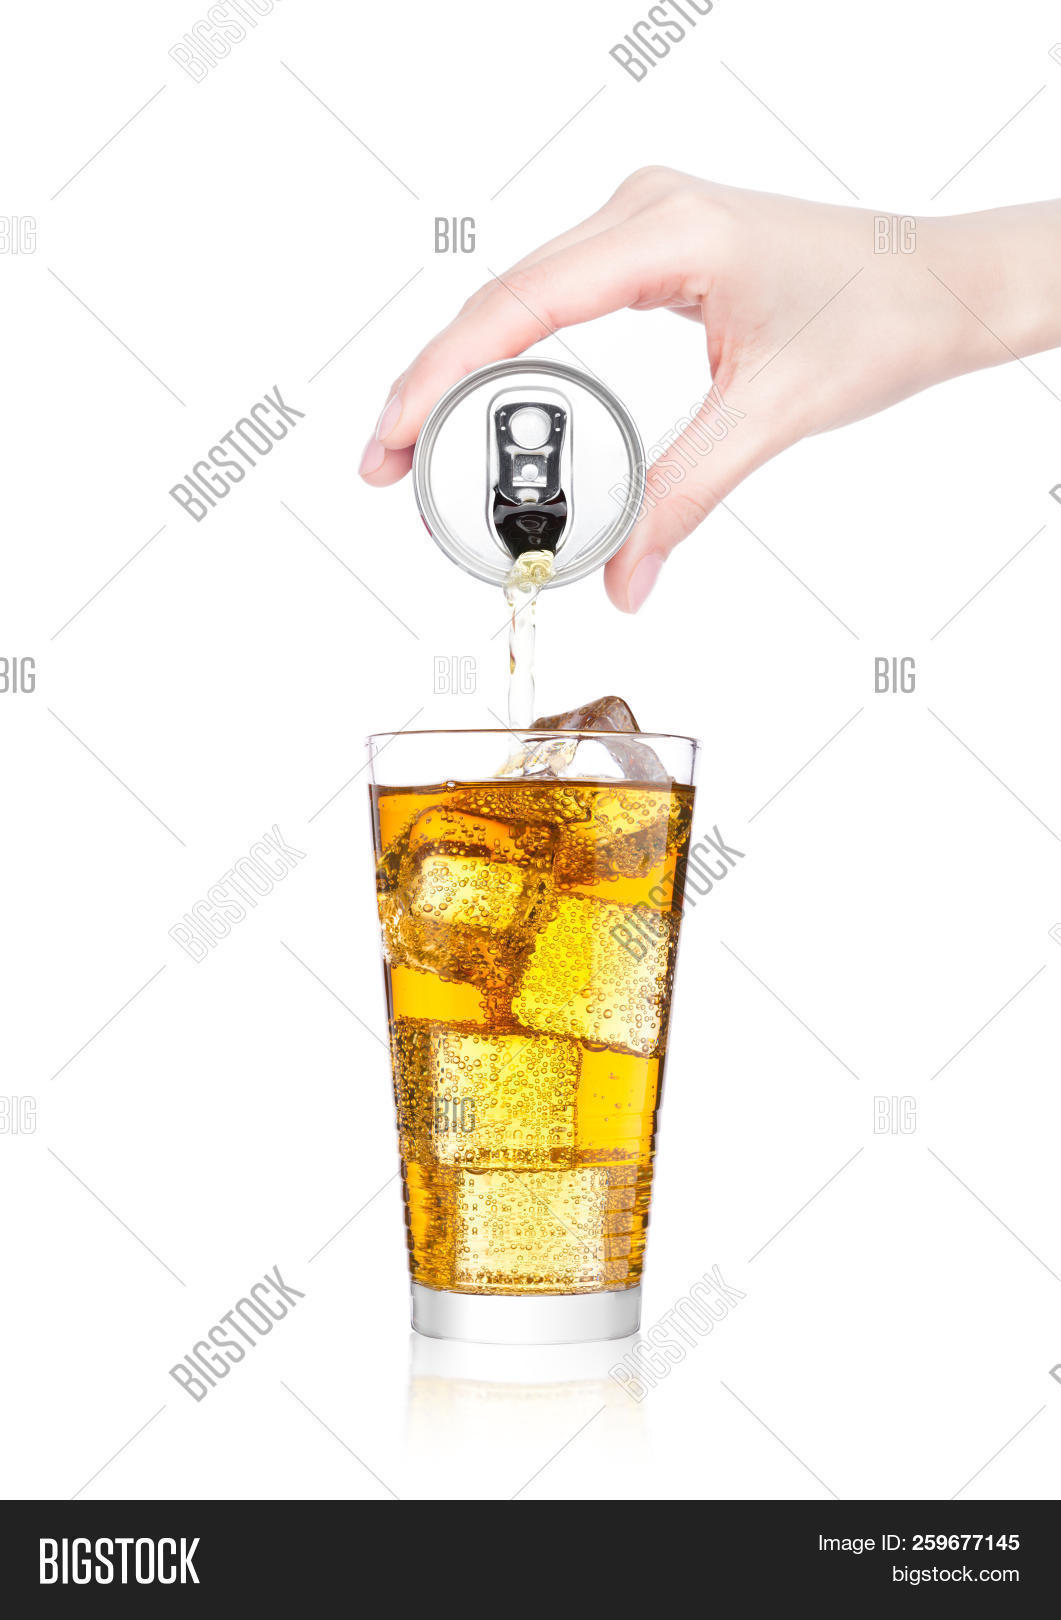 action,alcohol,animals,background,bar,bicycle,brandy,brown,can,carbonated,chasing,cold,collection,cowboy,cube,drink,drop,energy,female,fizz,flow,flowing,fluid,glass,gold,hand,ice,iced,isolated,juice,motion,moving,nightclub,nobody,orange,person,pouring,professional,red,refreshment,shot,soft,splash,splashing,studio,surface,tin,water,whiskey